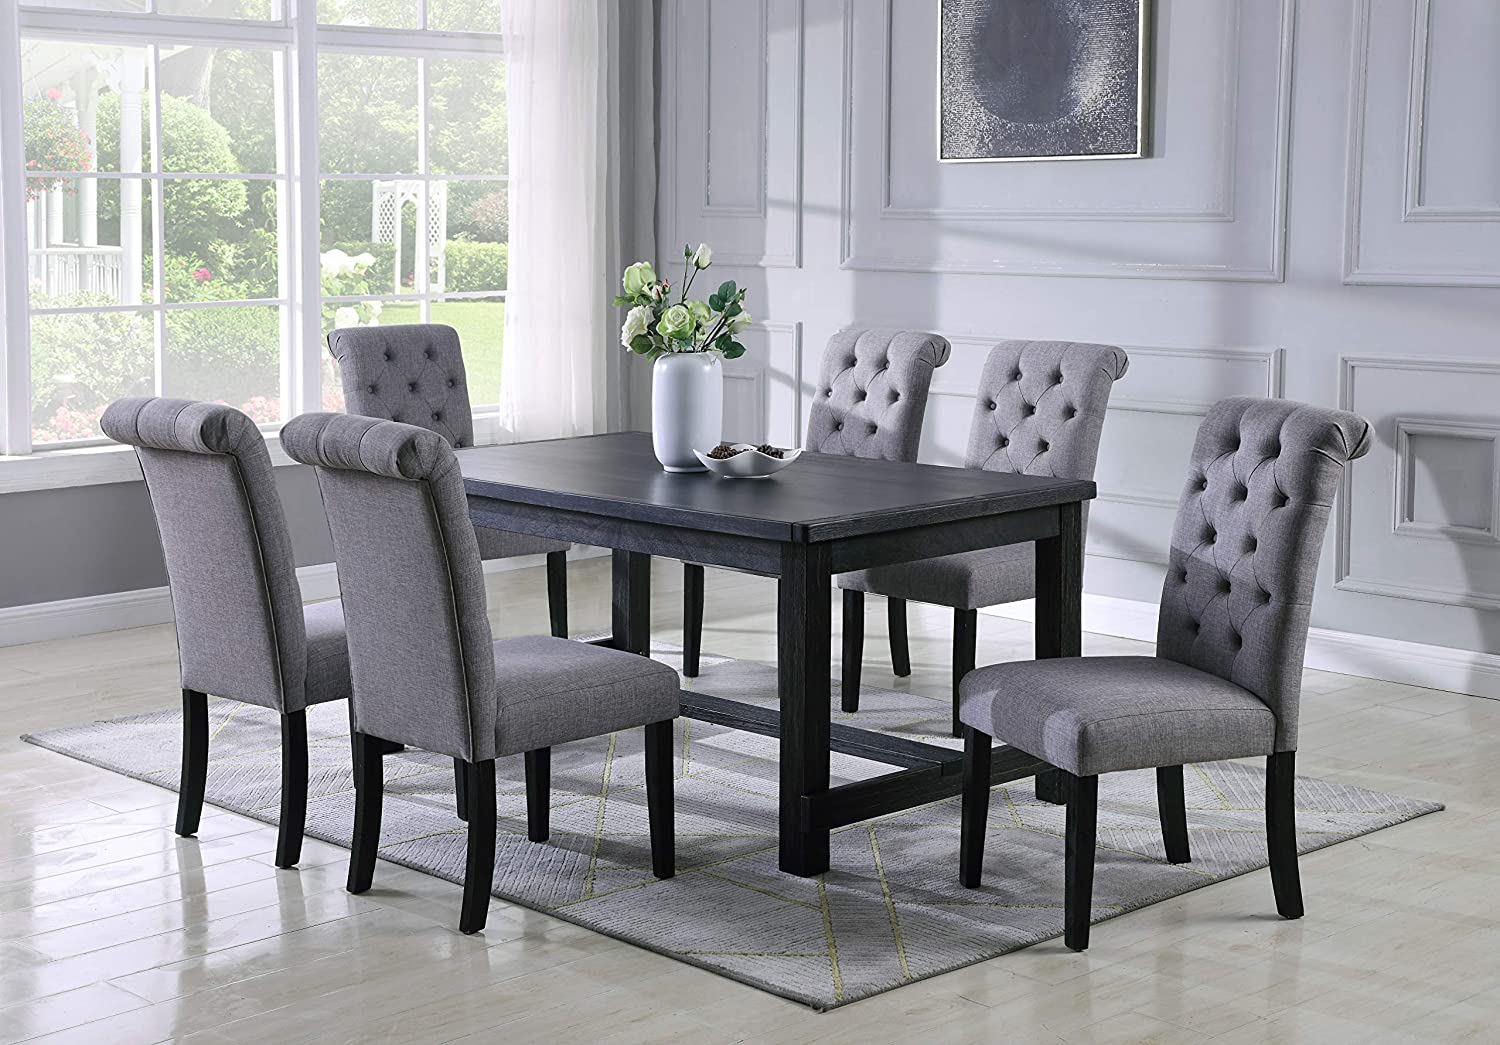 Roundhill Furniture Aneta Antique Black Finished Wood Dining Set, Table with Six Chairs, Gray